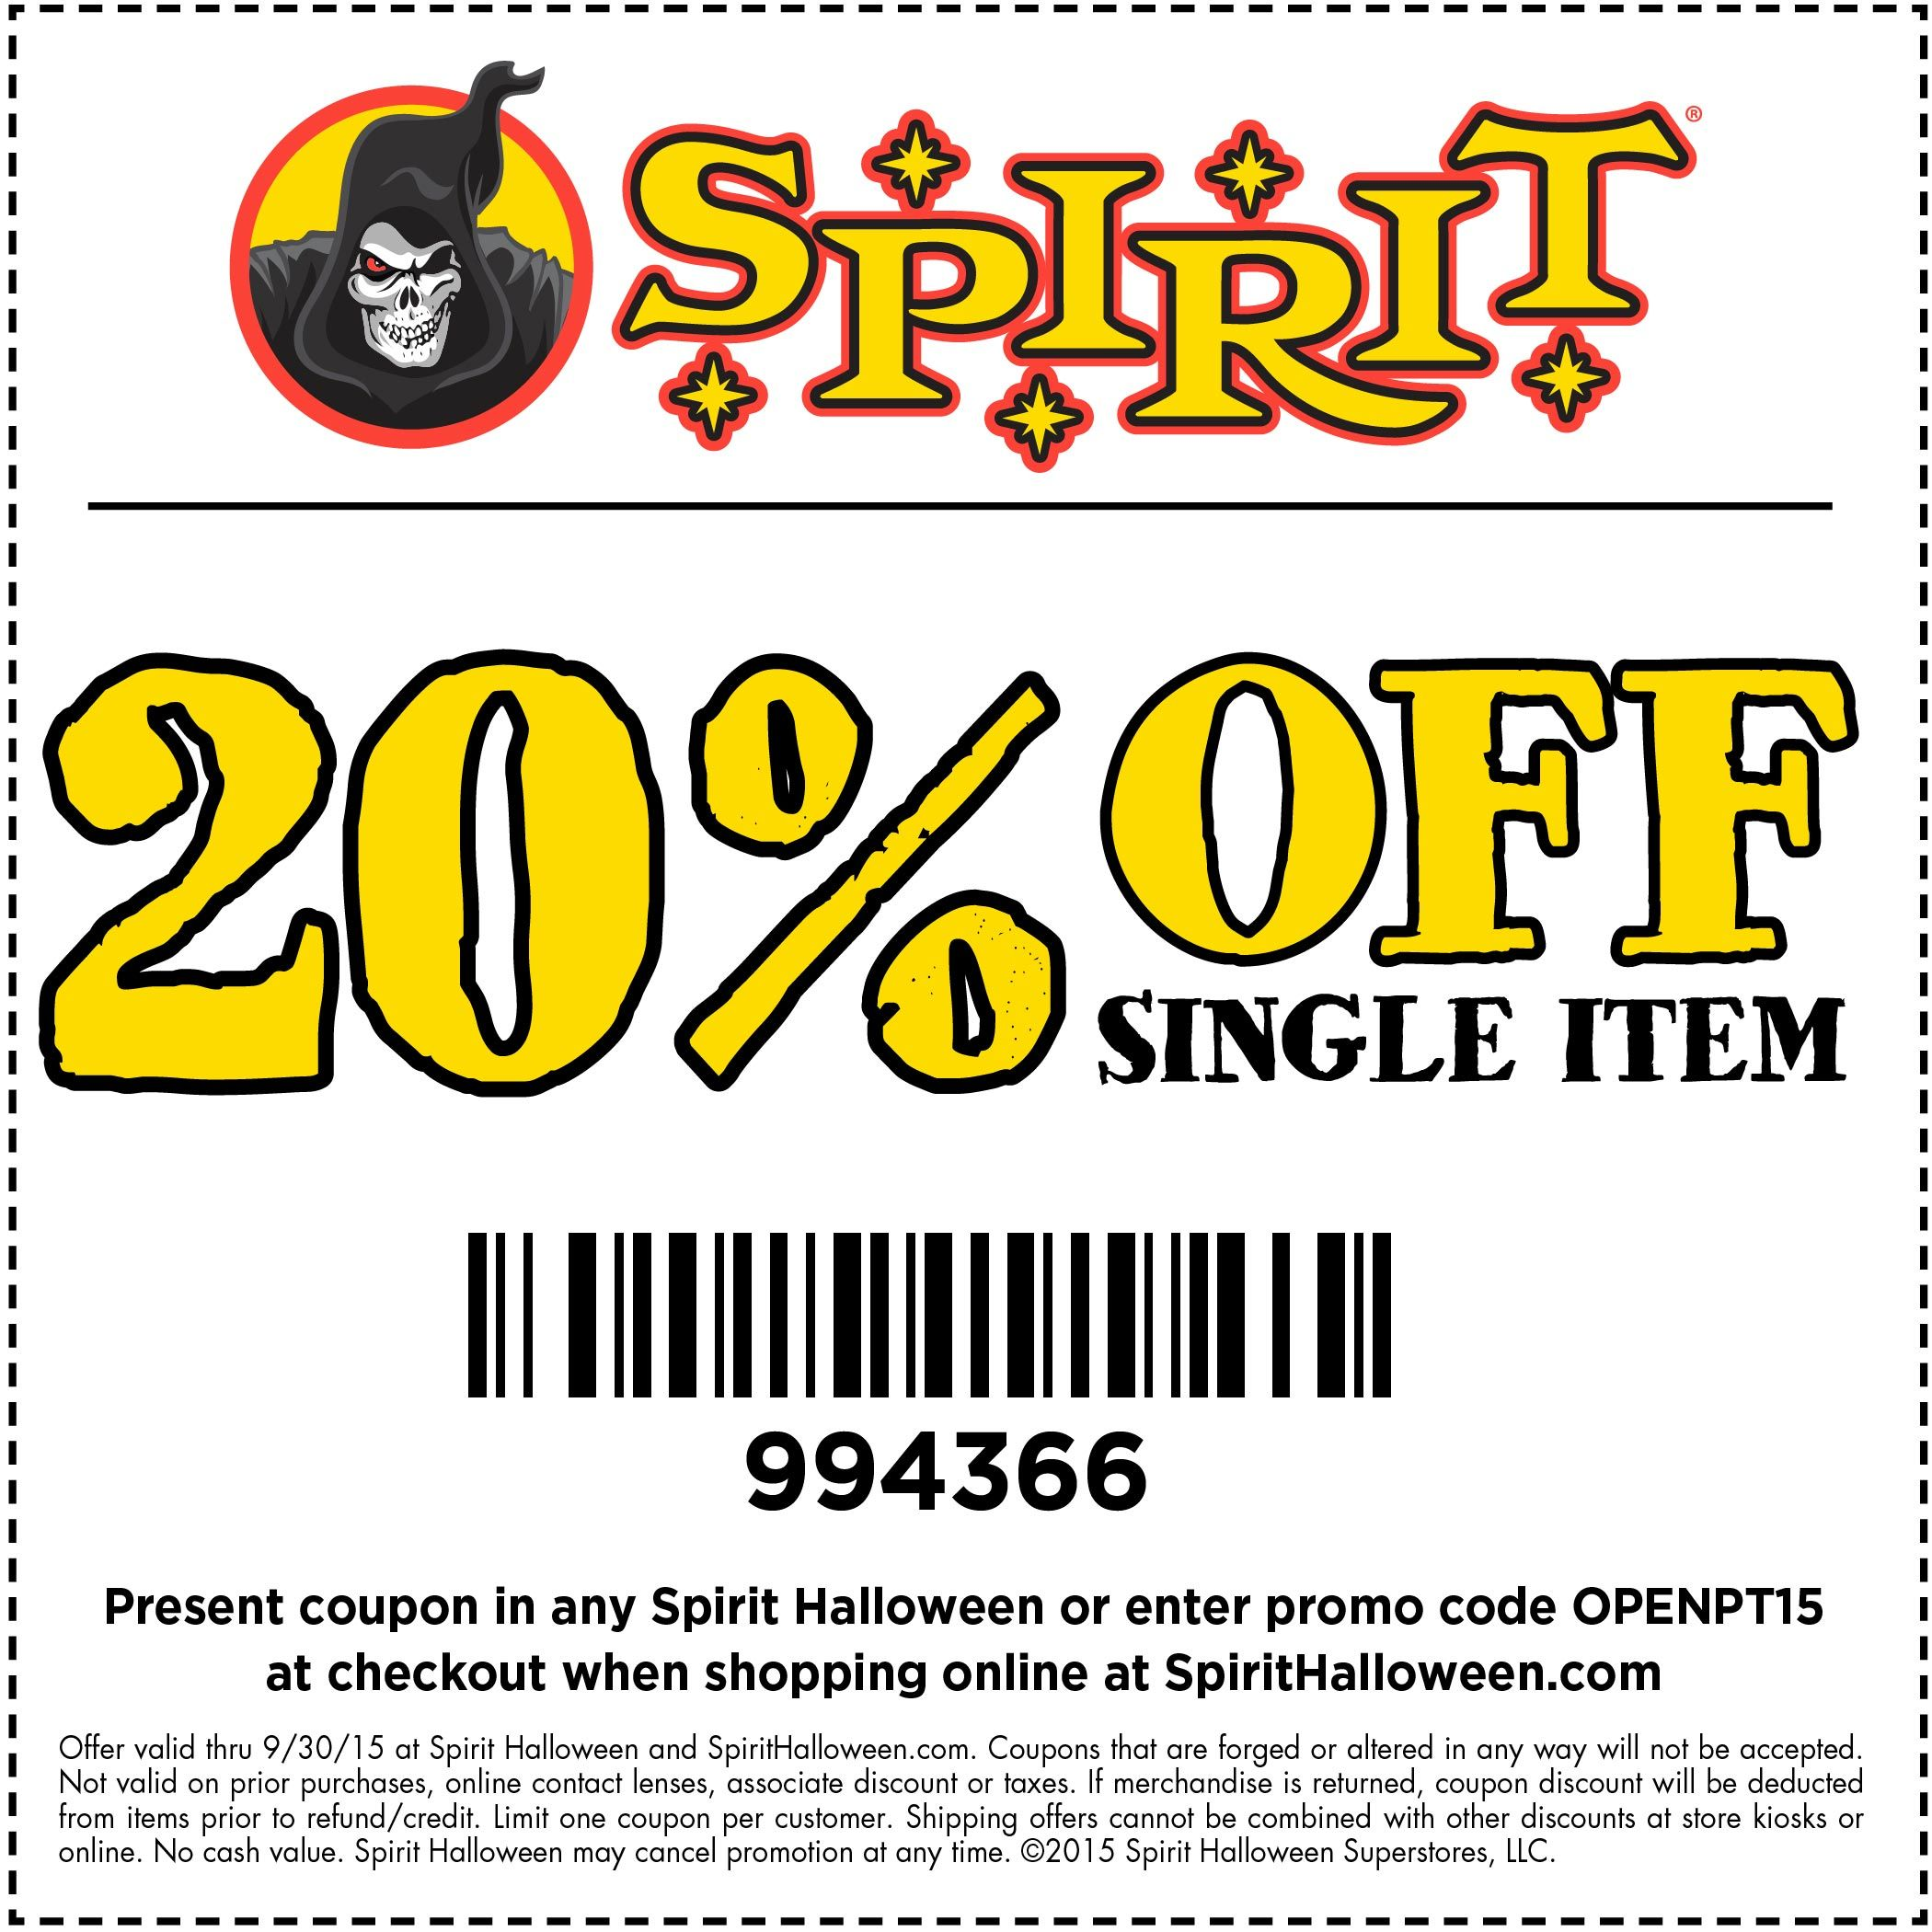 Spirit Halloween stores are now opening! Get to your